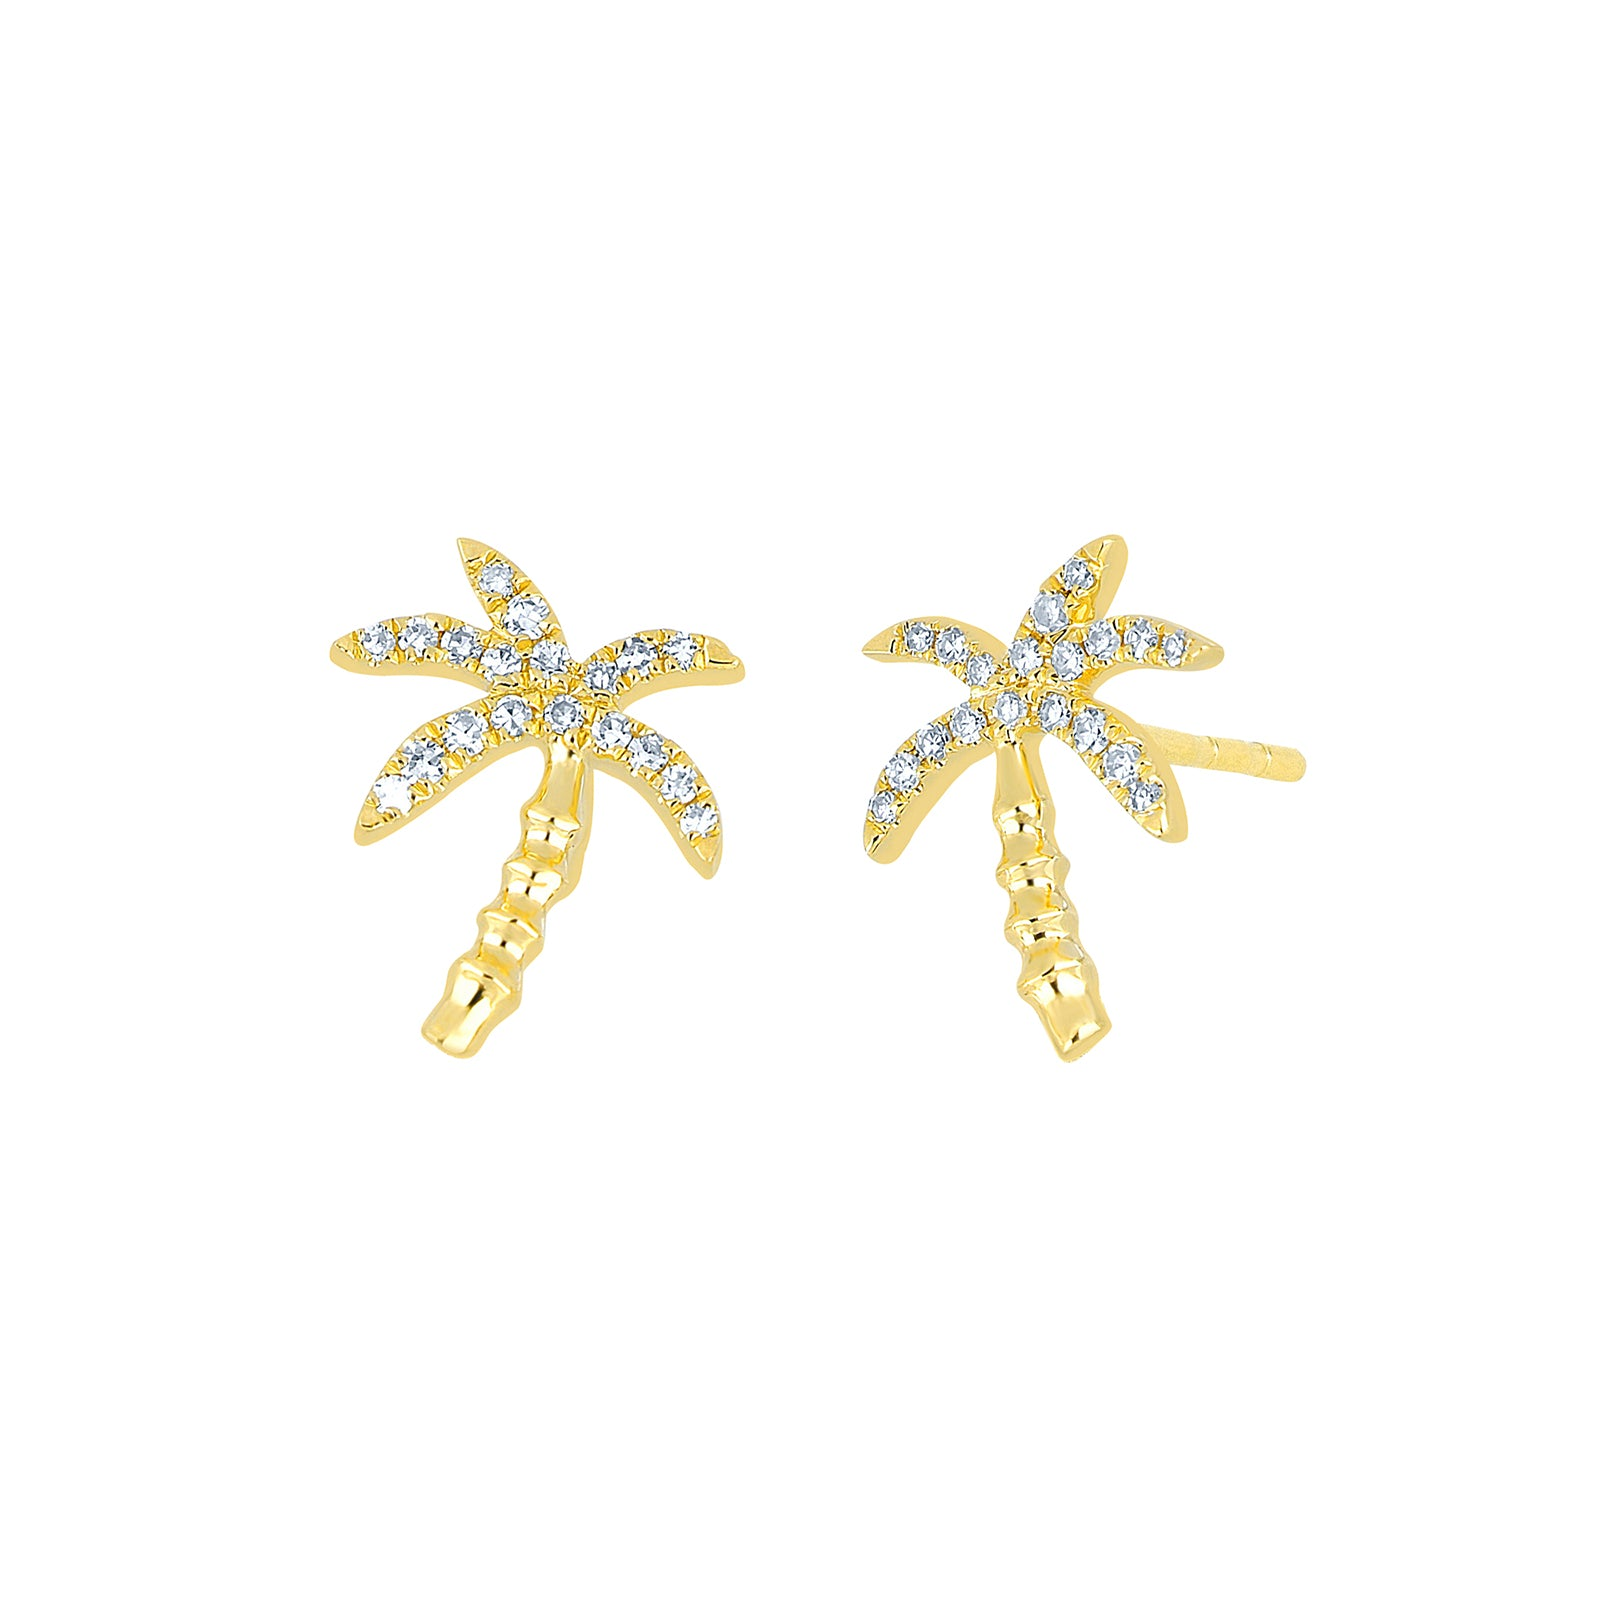 EF Collection Wild Palm Diamond Studs - Yellow Gold - Earrings - Broken English Jewelry